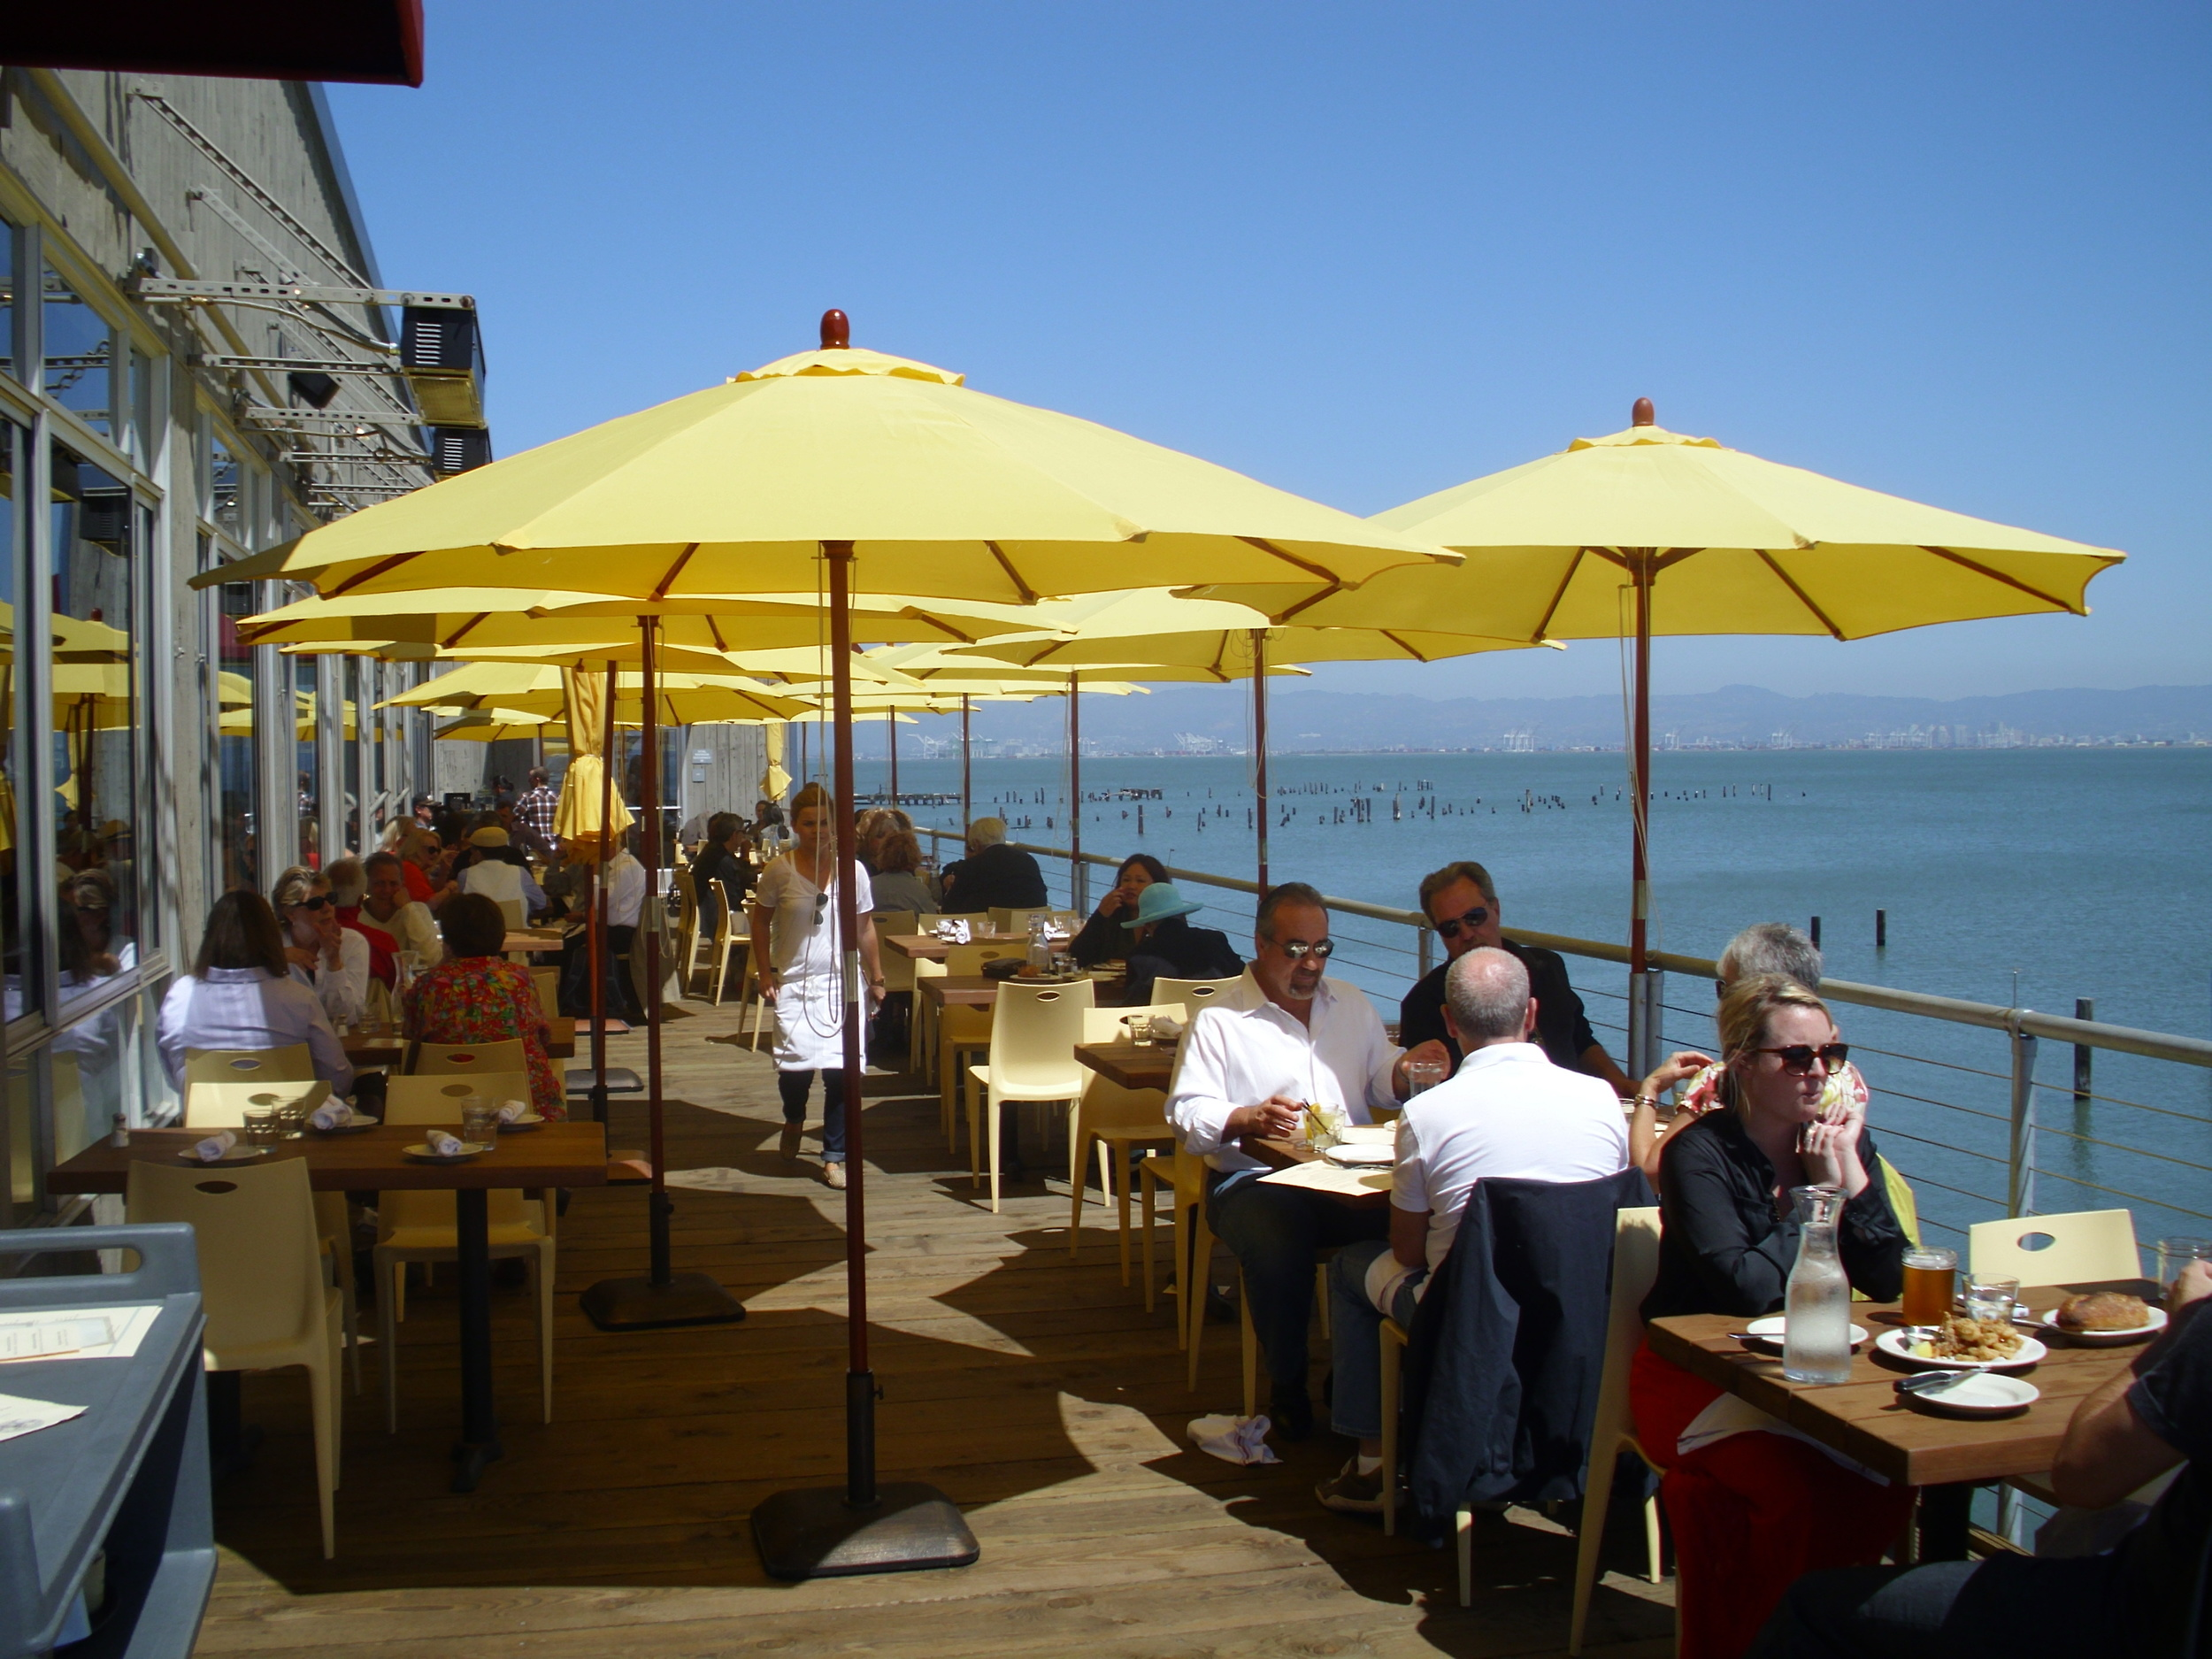 Mission Rock Resort is a bi-level seafood restaurant with an oyster bar and decks overlooking the bay.